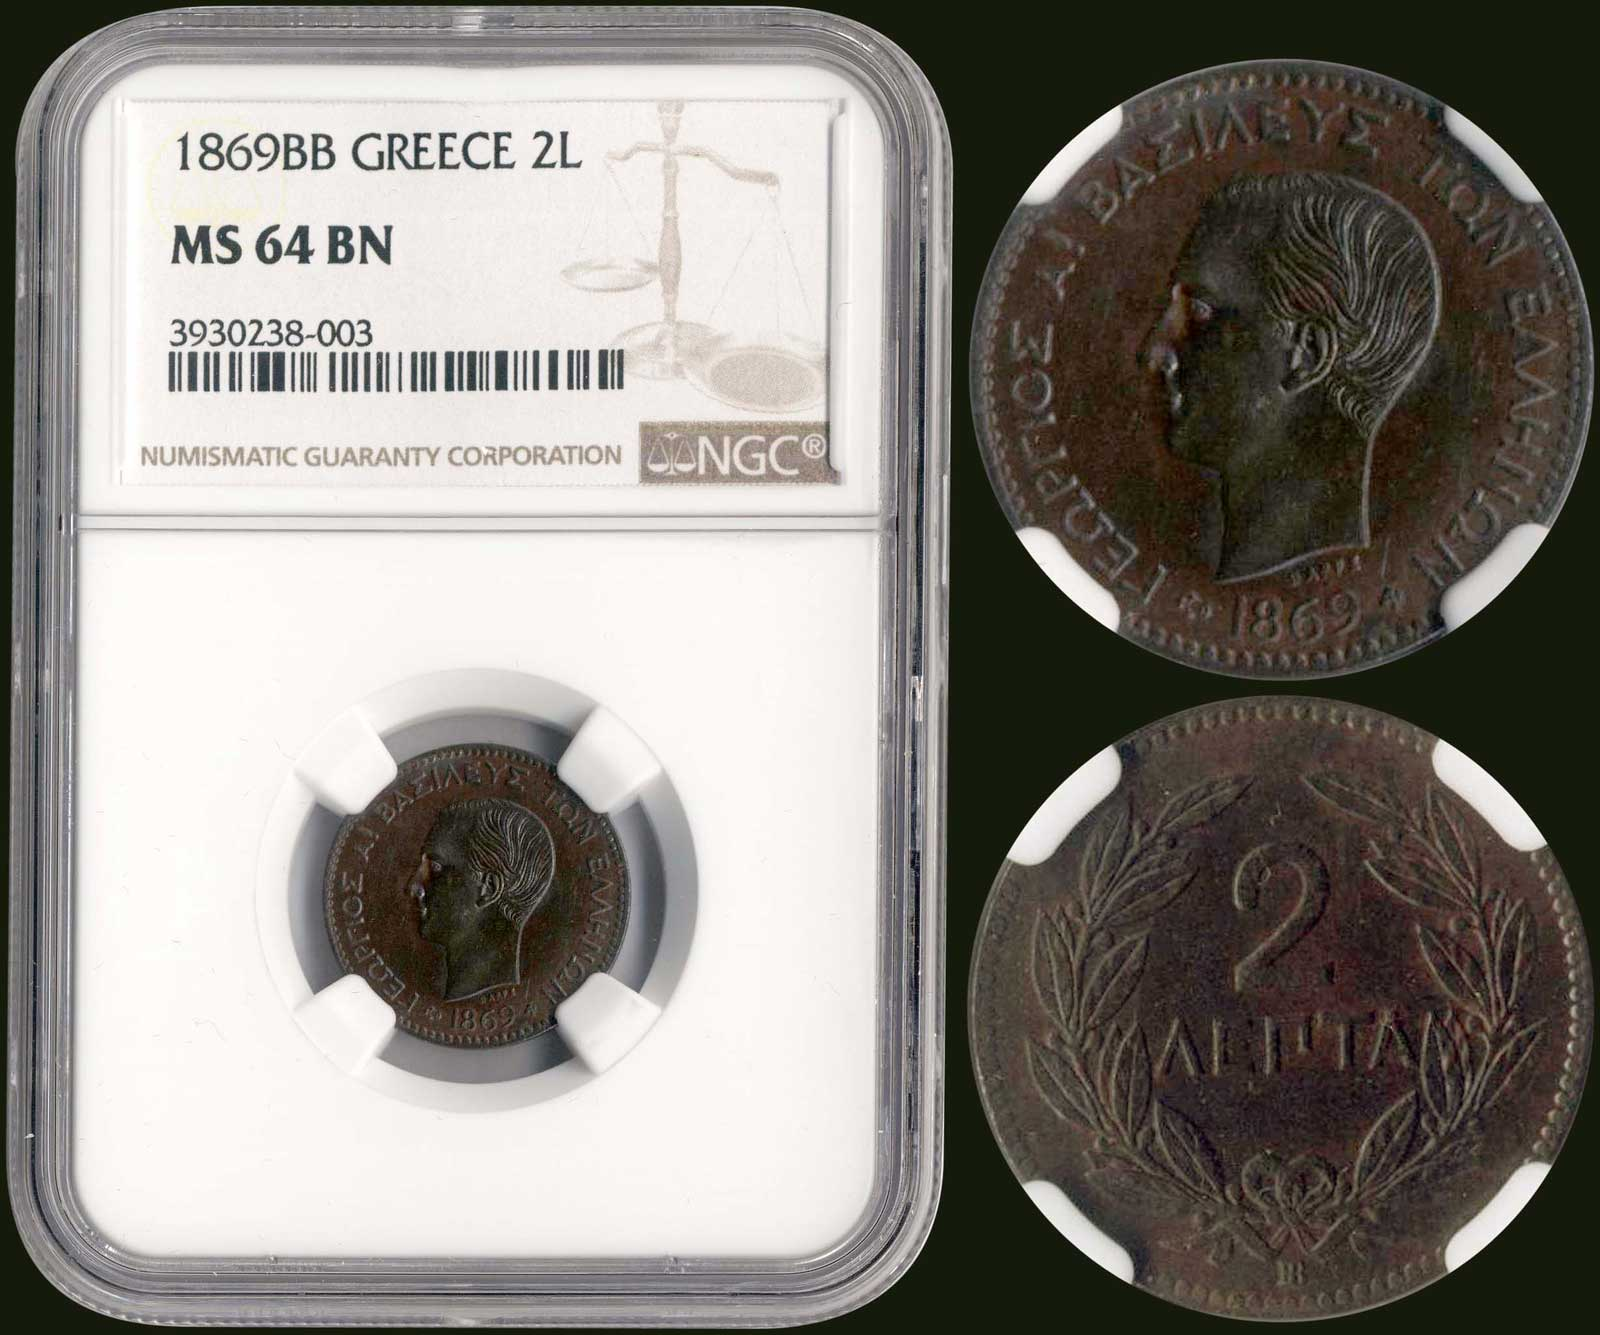 Lot 9096 - GREECE-  COINS & TOKENS king george i -  A. Karamitsos Public & LIVE Bid Auction 606 Coins, Medals & Banknotes